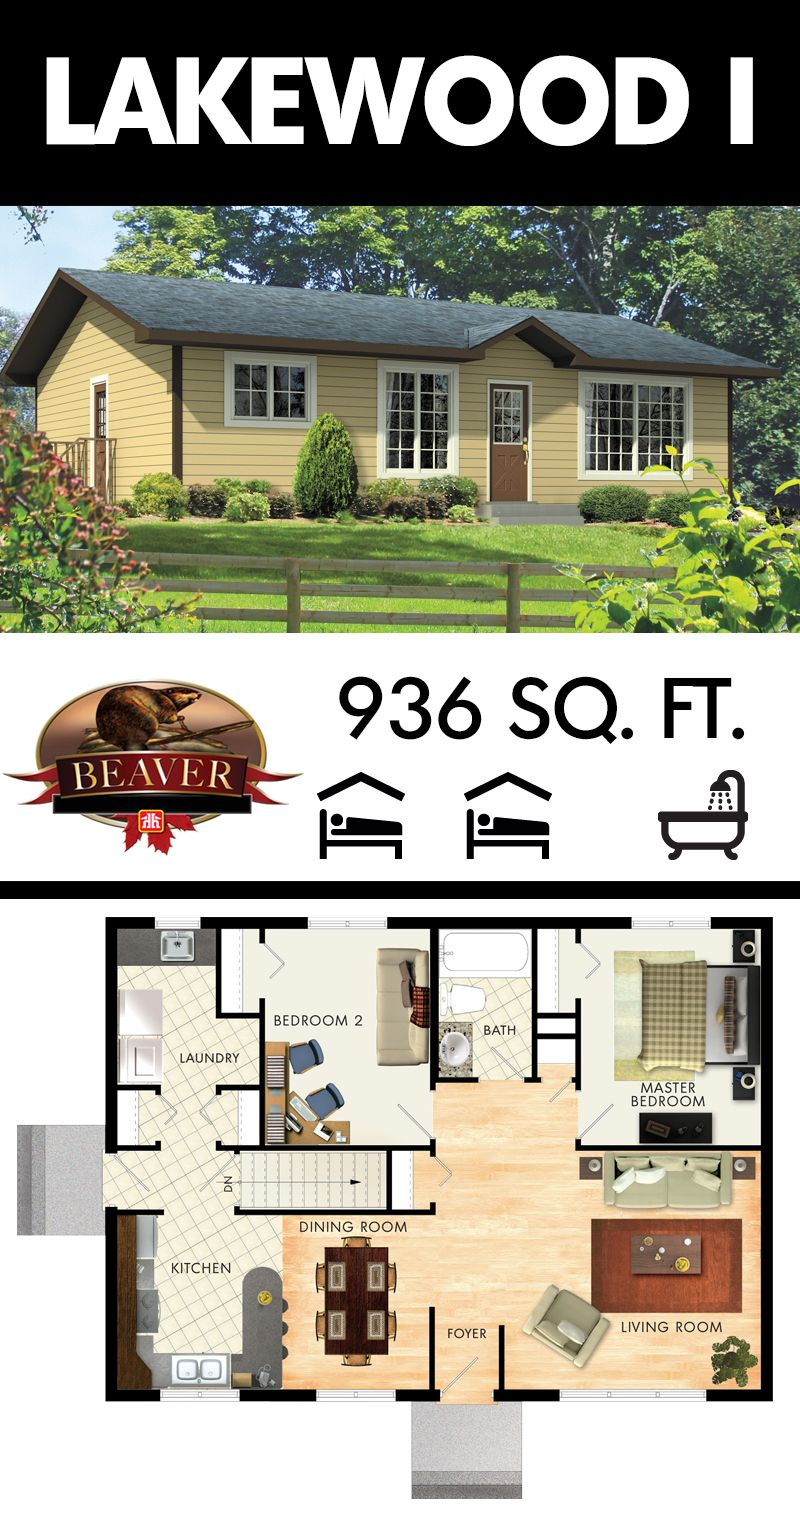 The lakewood i is a country bungalow just under 1000 for Bungalow designs 1000 sq ft